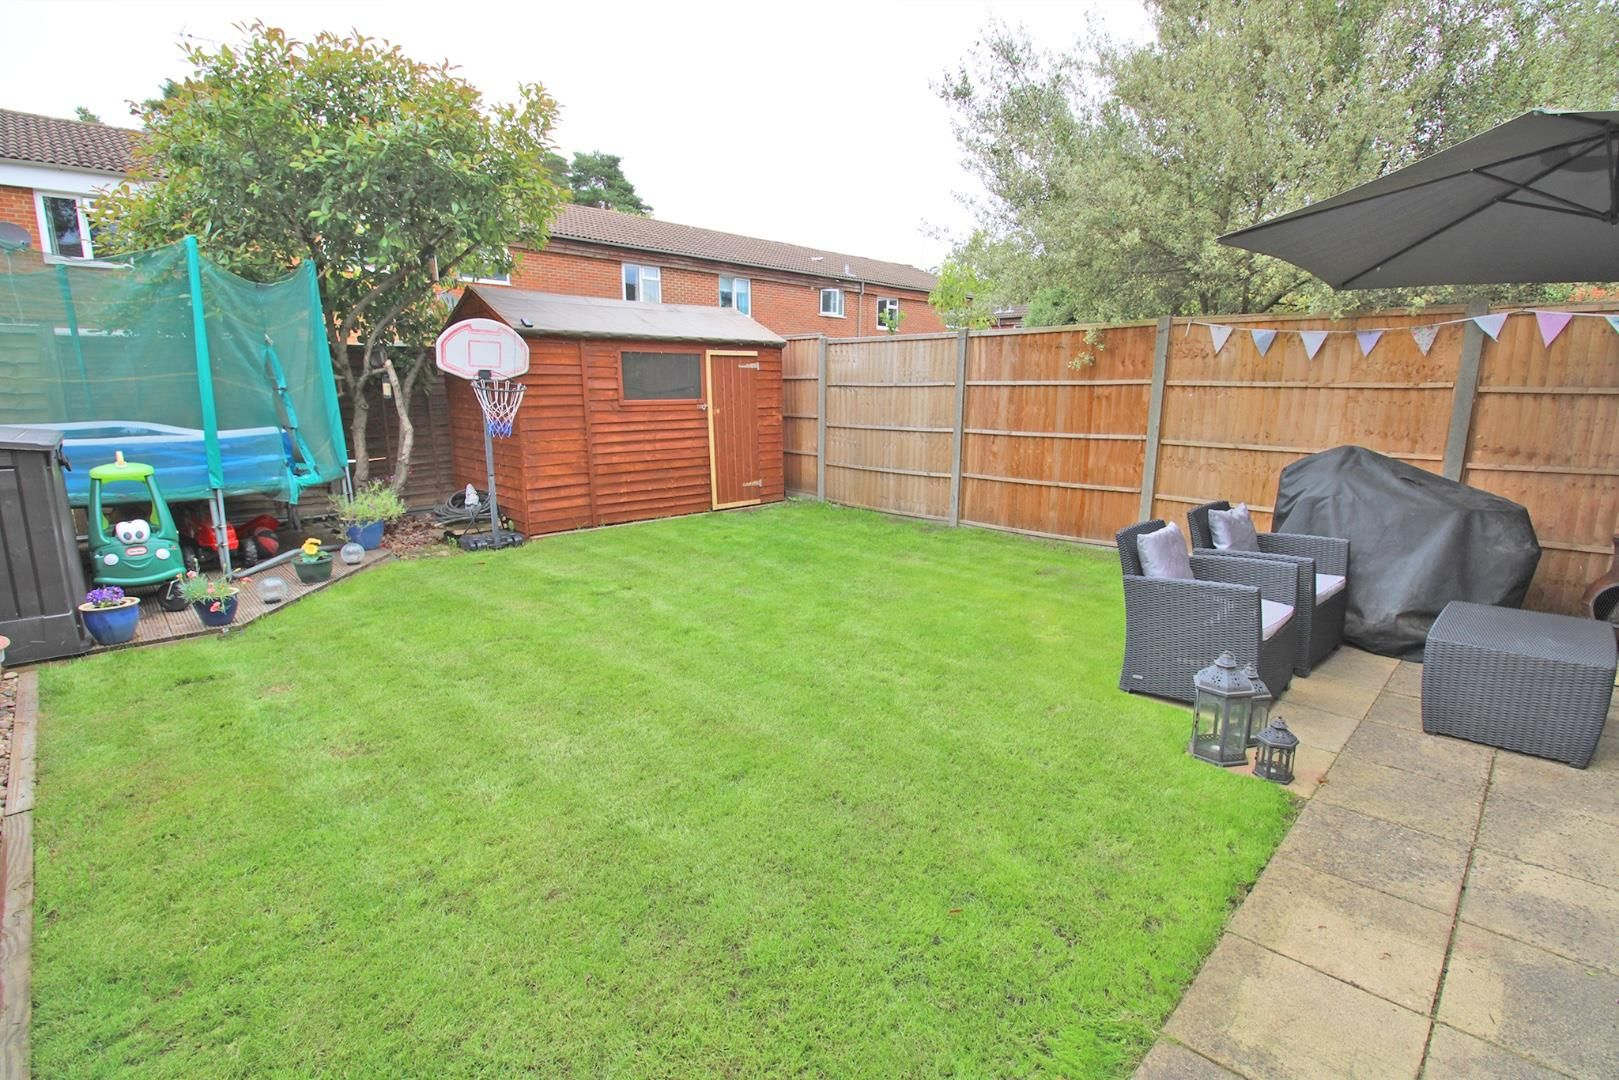 3 bed house for sale in Crown Wood 5